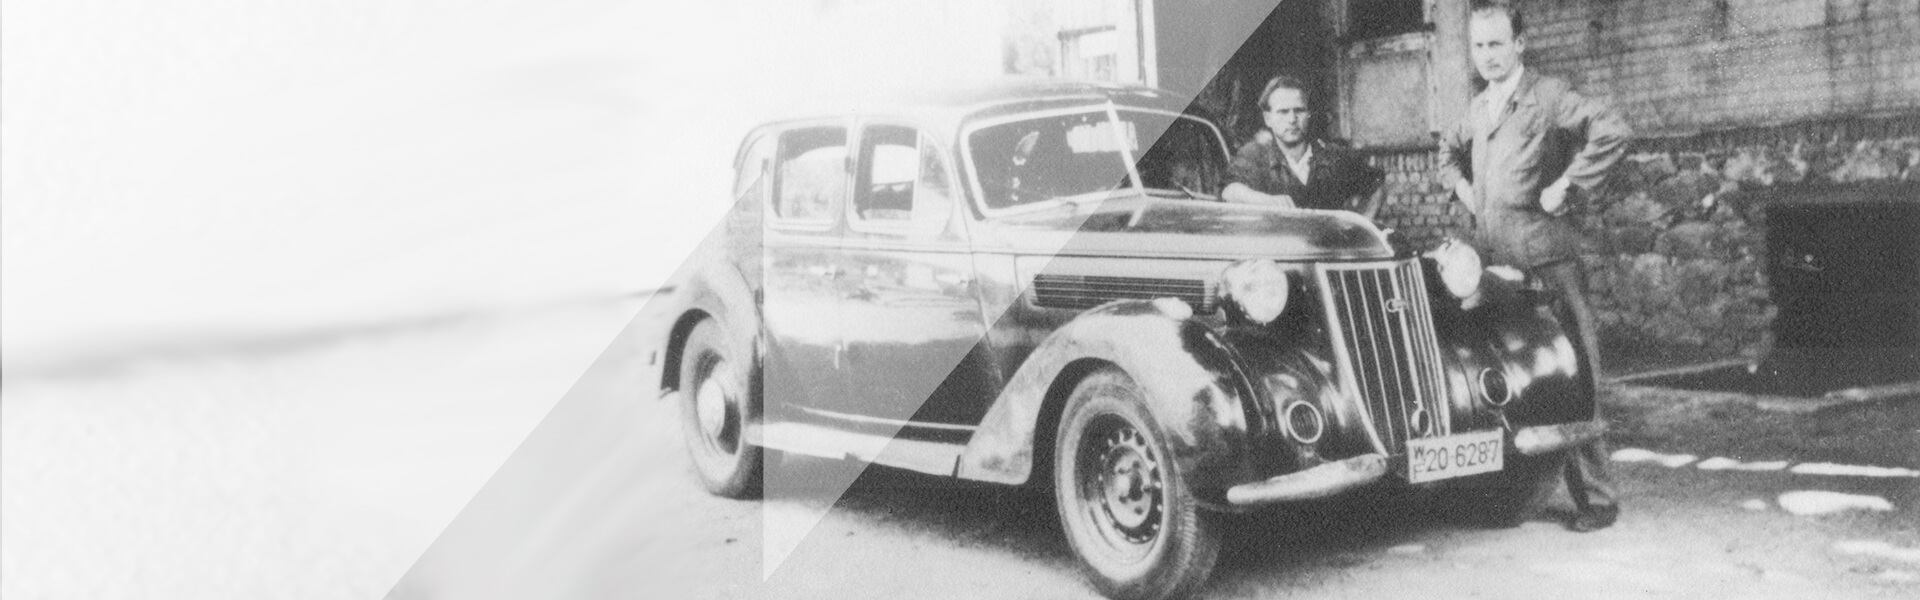 old picture in black and white showing a car and two men